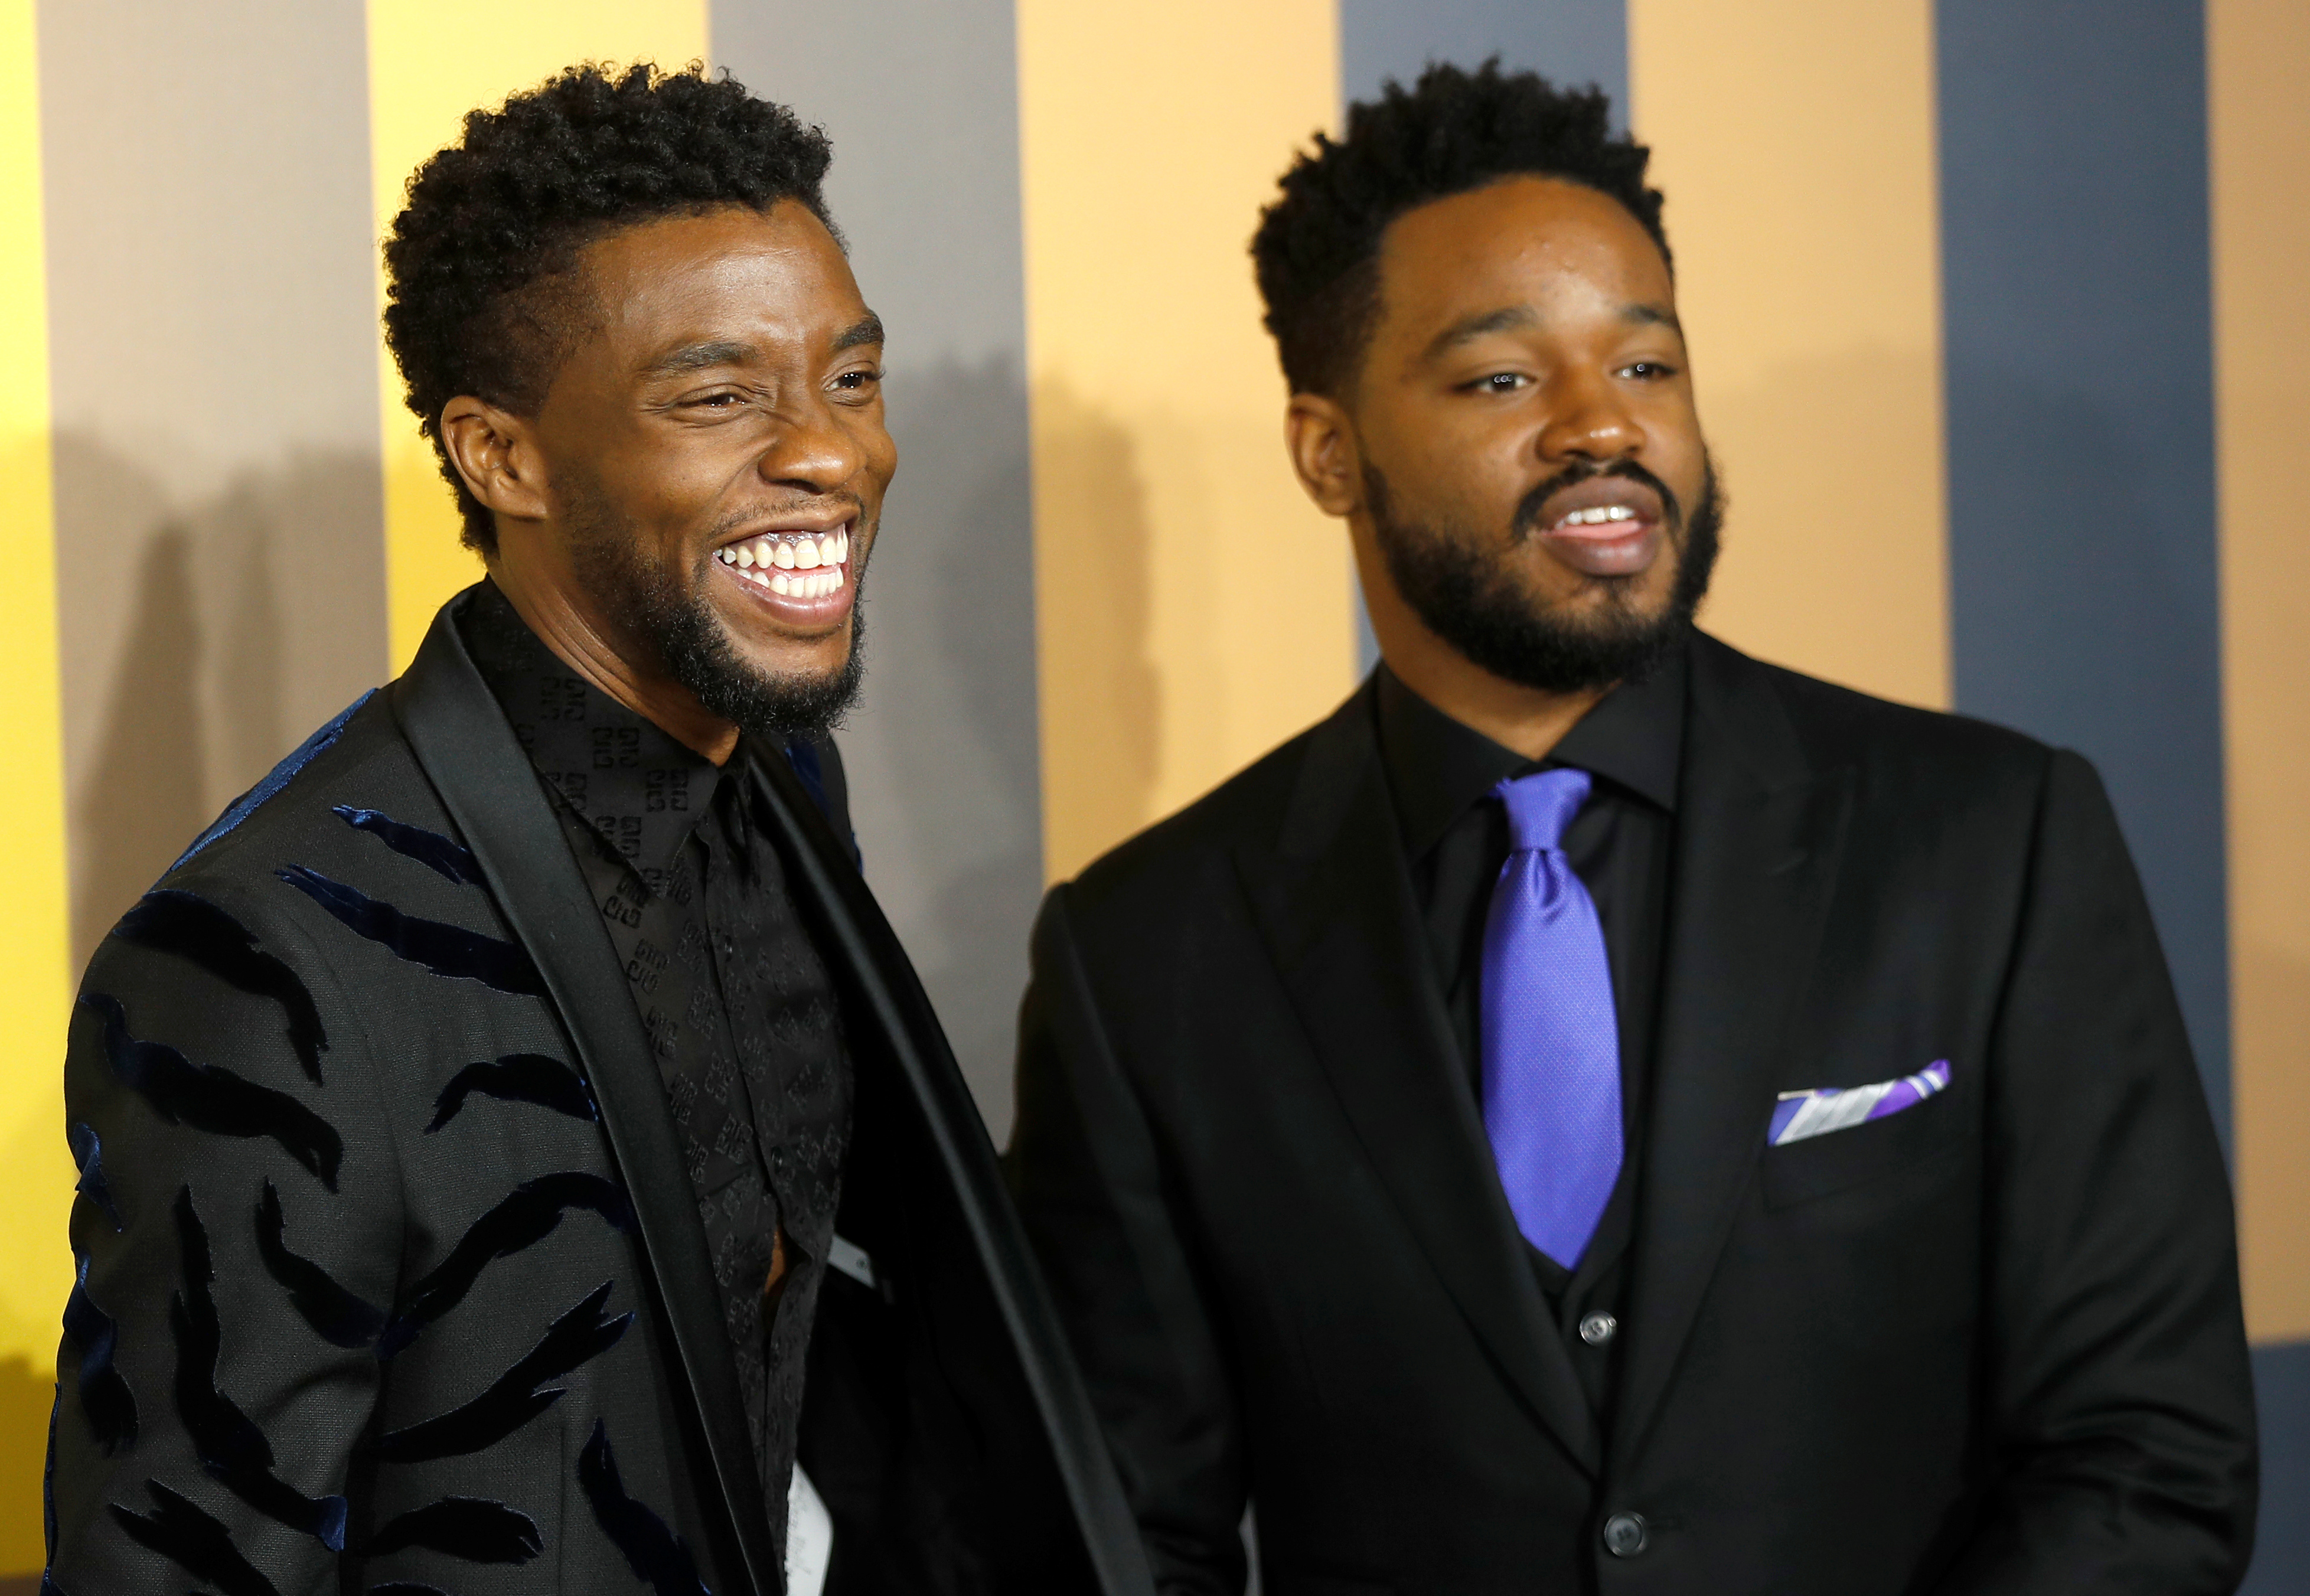 Actor Chadwick Boseman and Director Ryan Coogler arrive at the premiere of the new Marvel superhero film 'Black Panther' in London, Britain February 8, 2018. REUTERS/Peter Nicholls